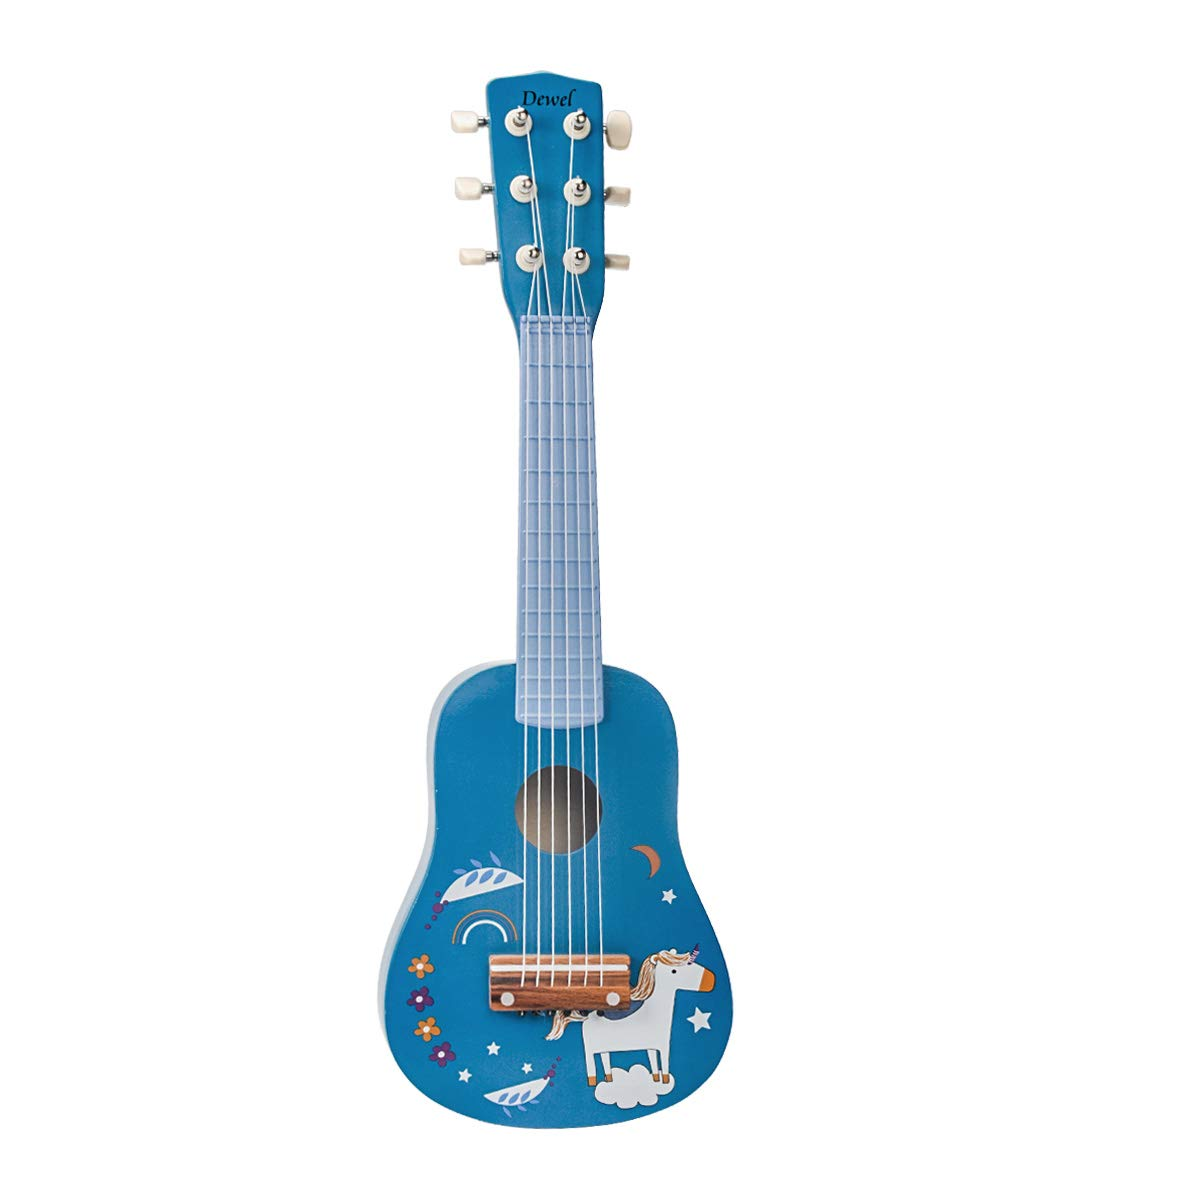 DEWEL Kids Ukulele Toy Guitar for Toddlers, Baby Kids Cute Guitar Rhyme Developmental Musical Instrument Educational Toy